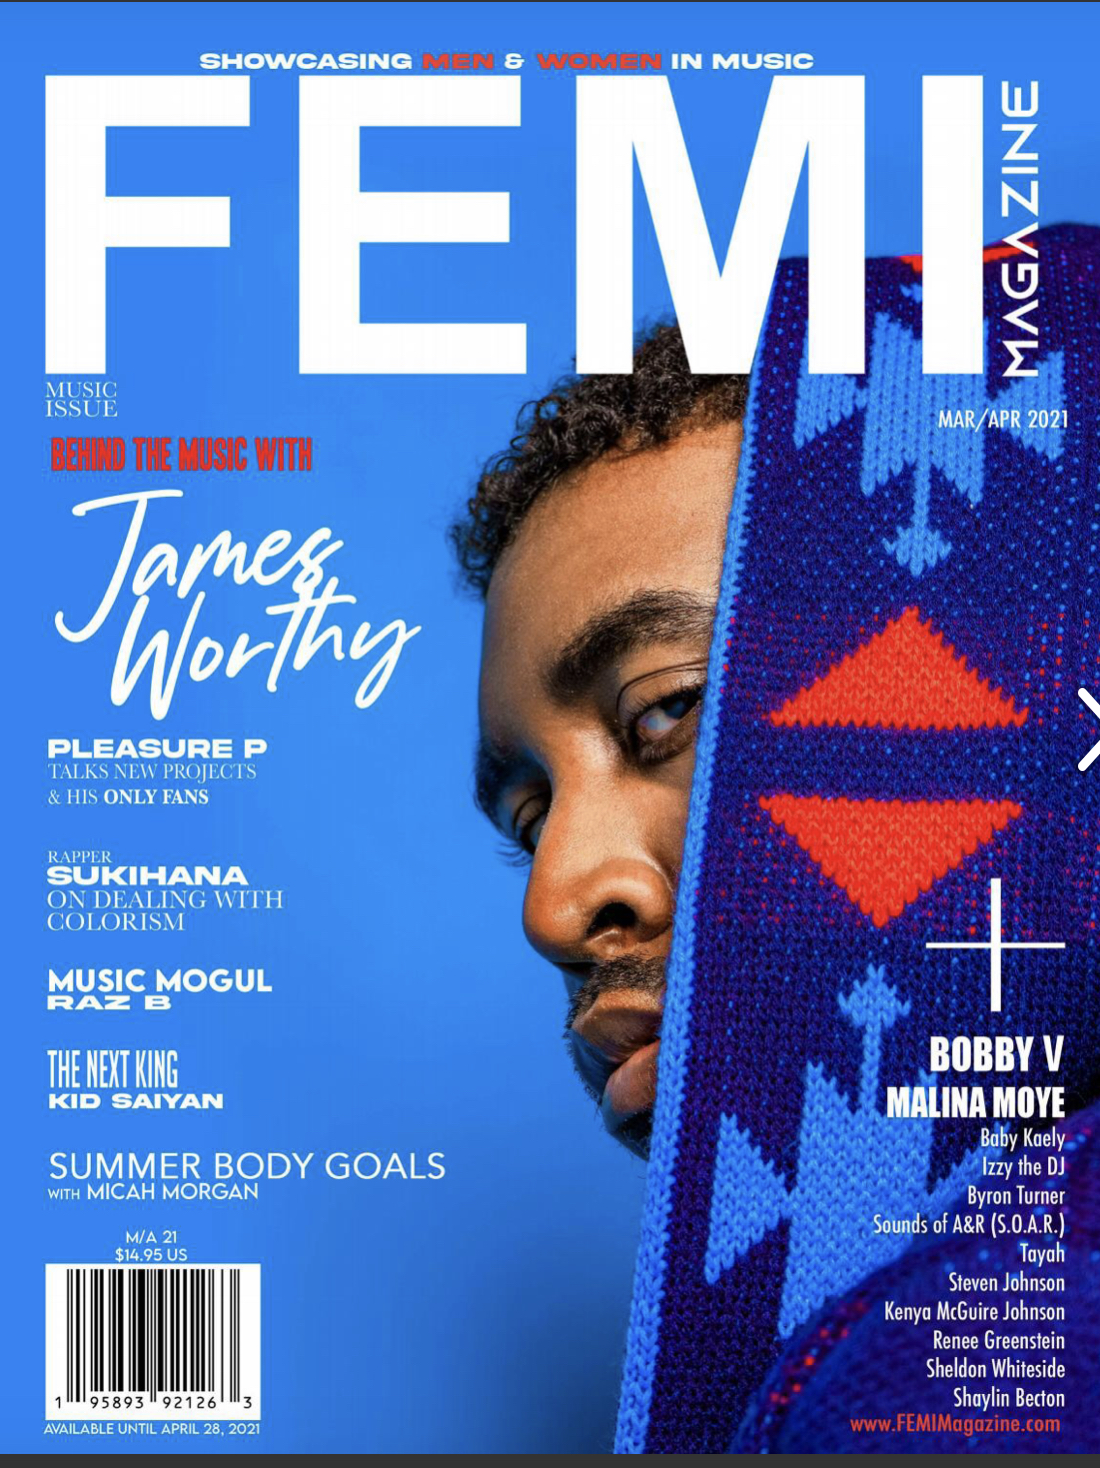 FEMI Magazine: Sounds of A&R Featured in March Issue